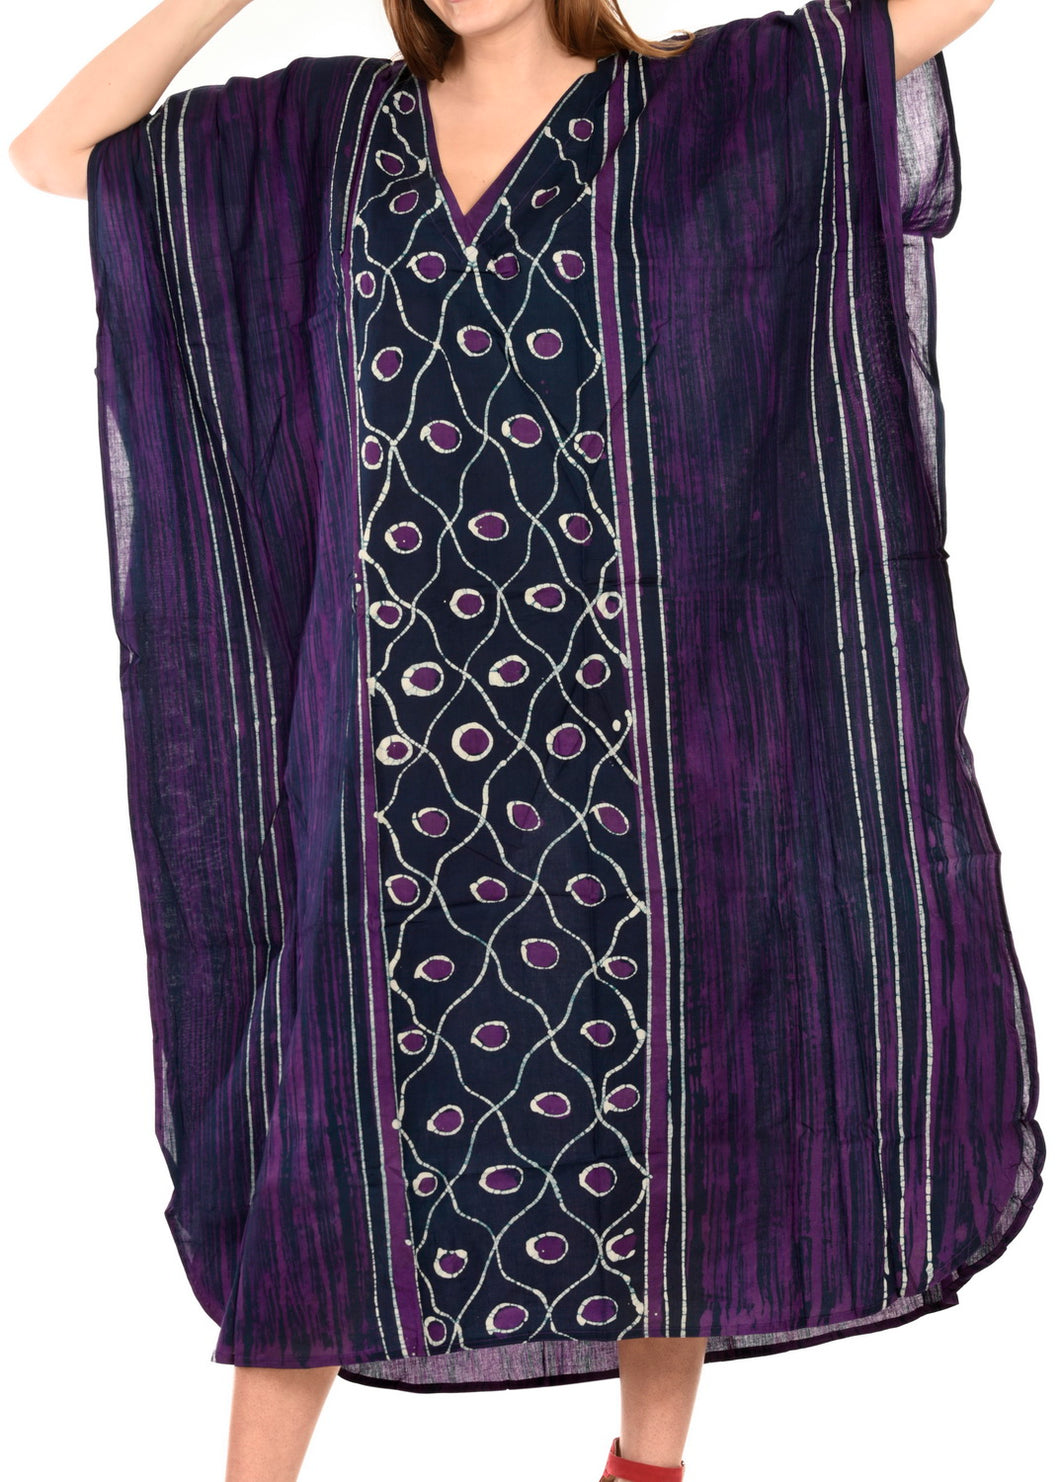 la-leela-cotton-batik-Printed-womens-kaftan-kimono-summer-beachwear-cover-up-dress-Purple